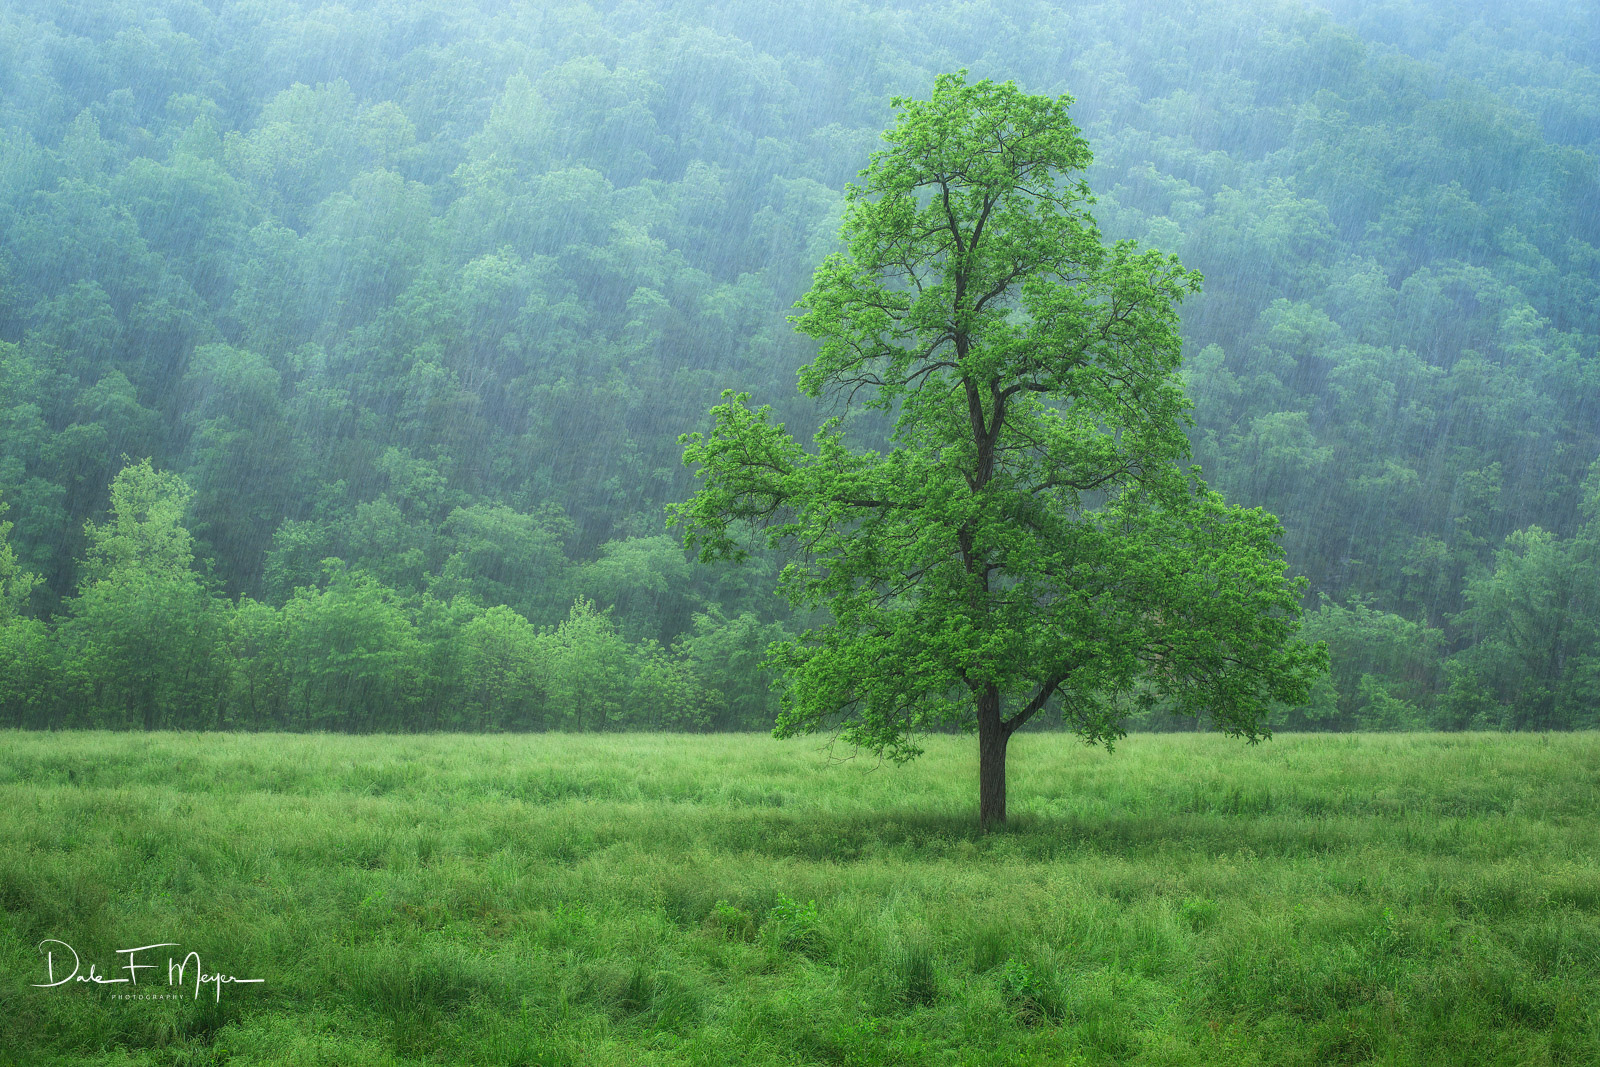 North Arkansas,Ponca Valley,Tree in Rain,spring 2015, photo